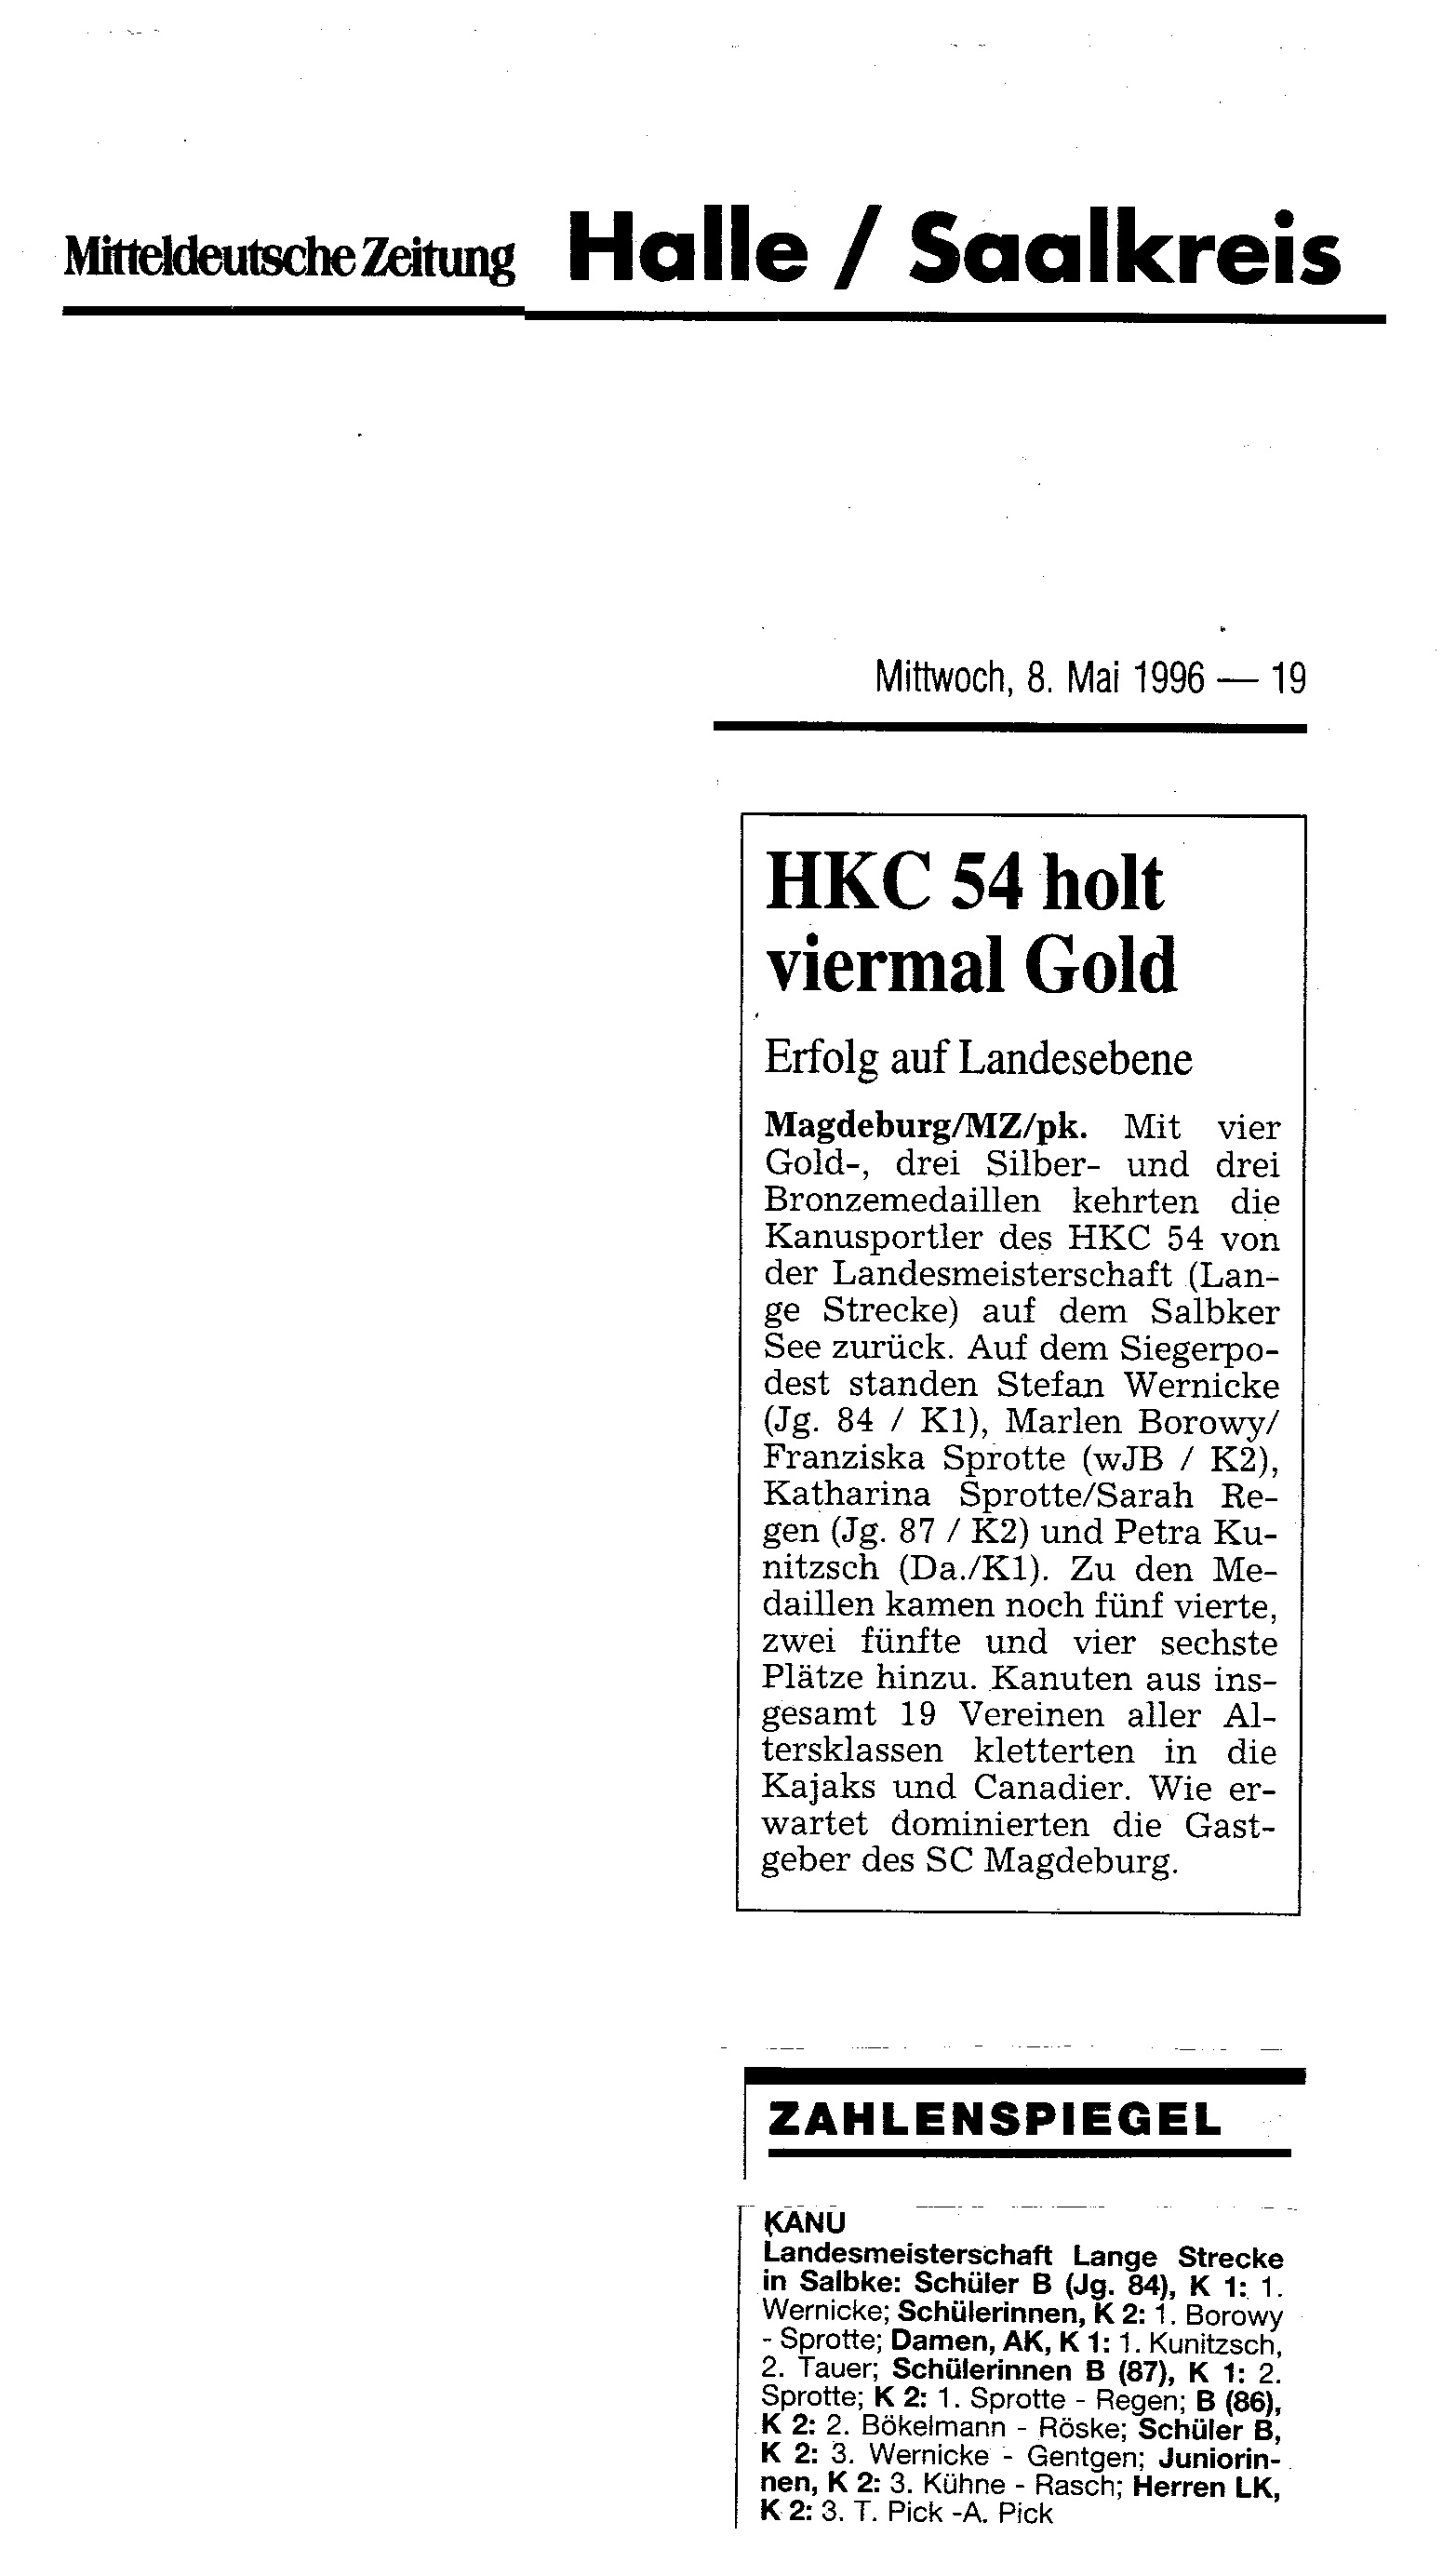 1996-05-08 MZ HKC 54 holt viermal Gold